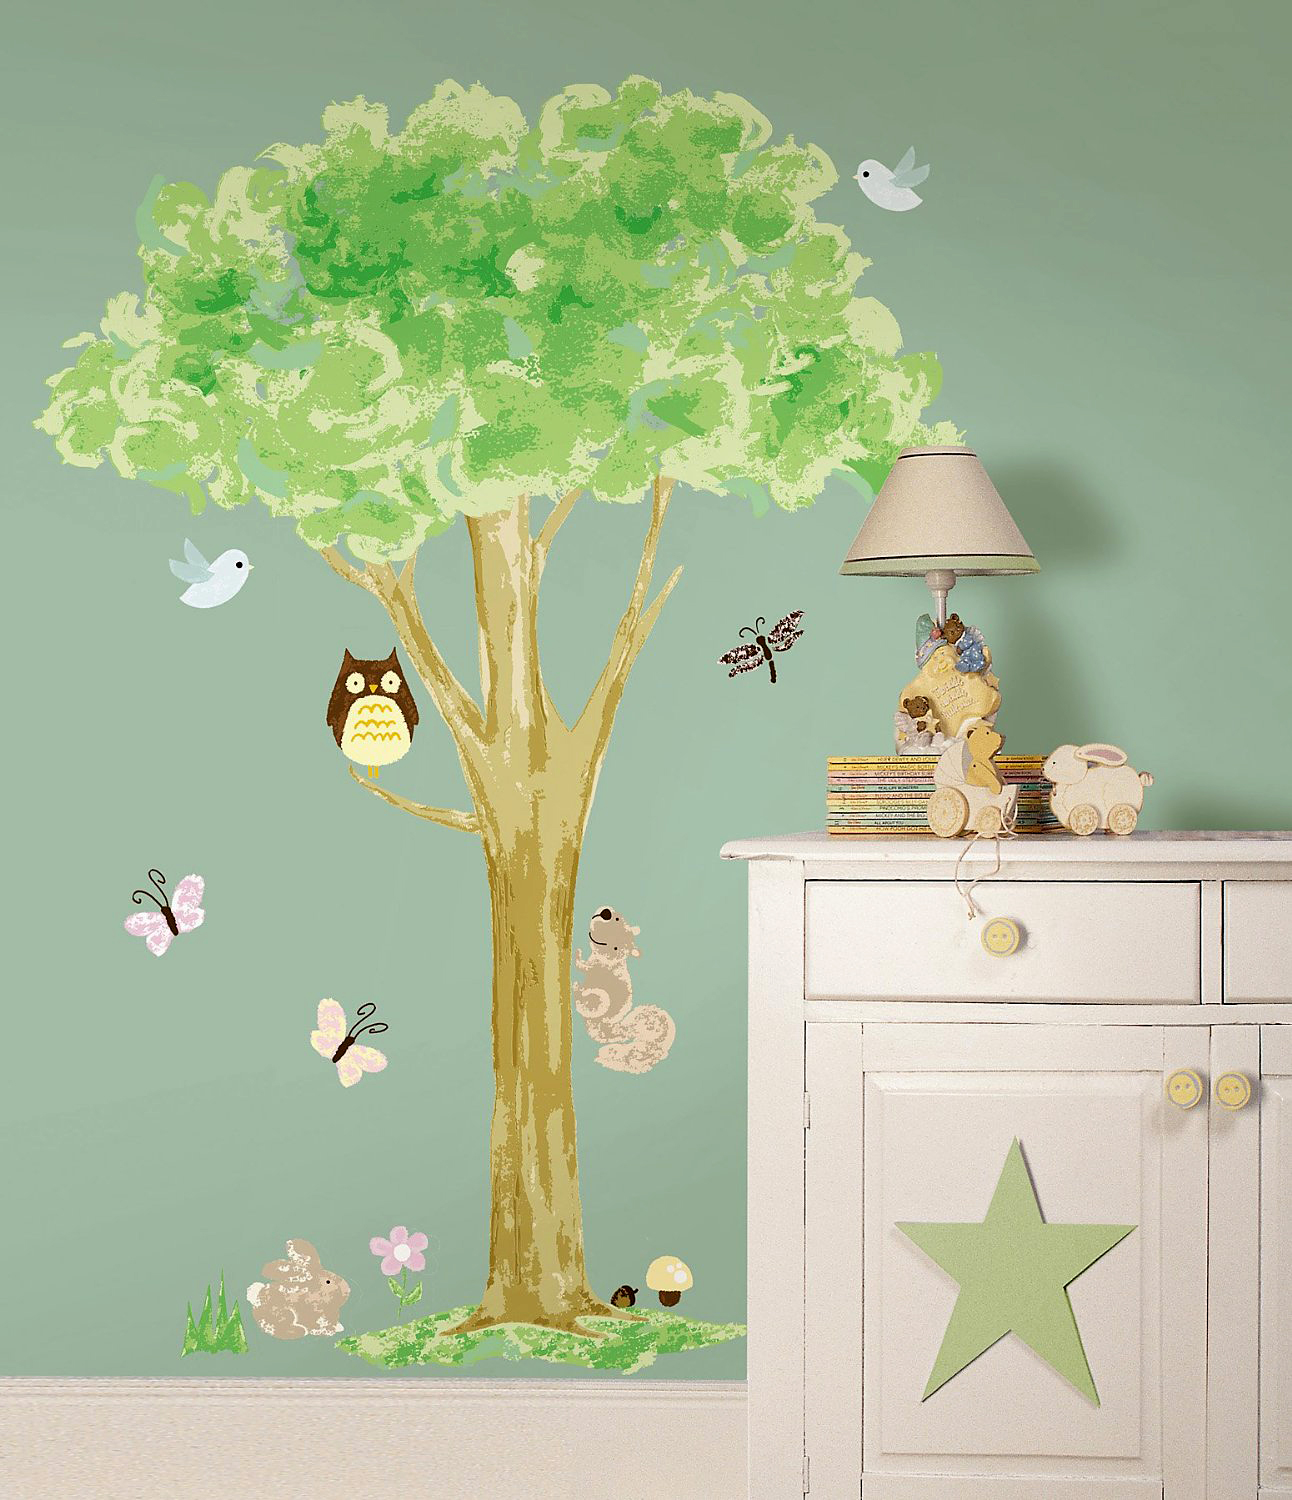 wandsticker wandtattoo wandbild baum mit waldtieren 140 cm www 4. Black Bedroom Furniture Sets. Home Design Ideas